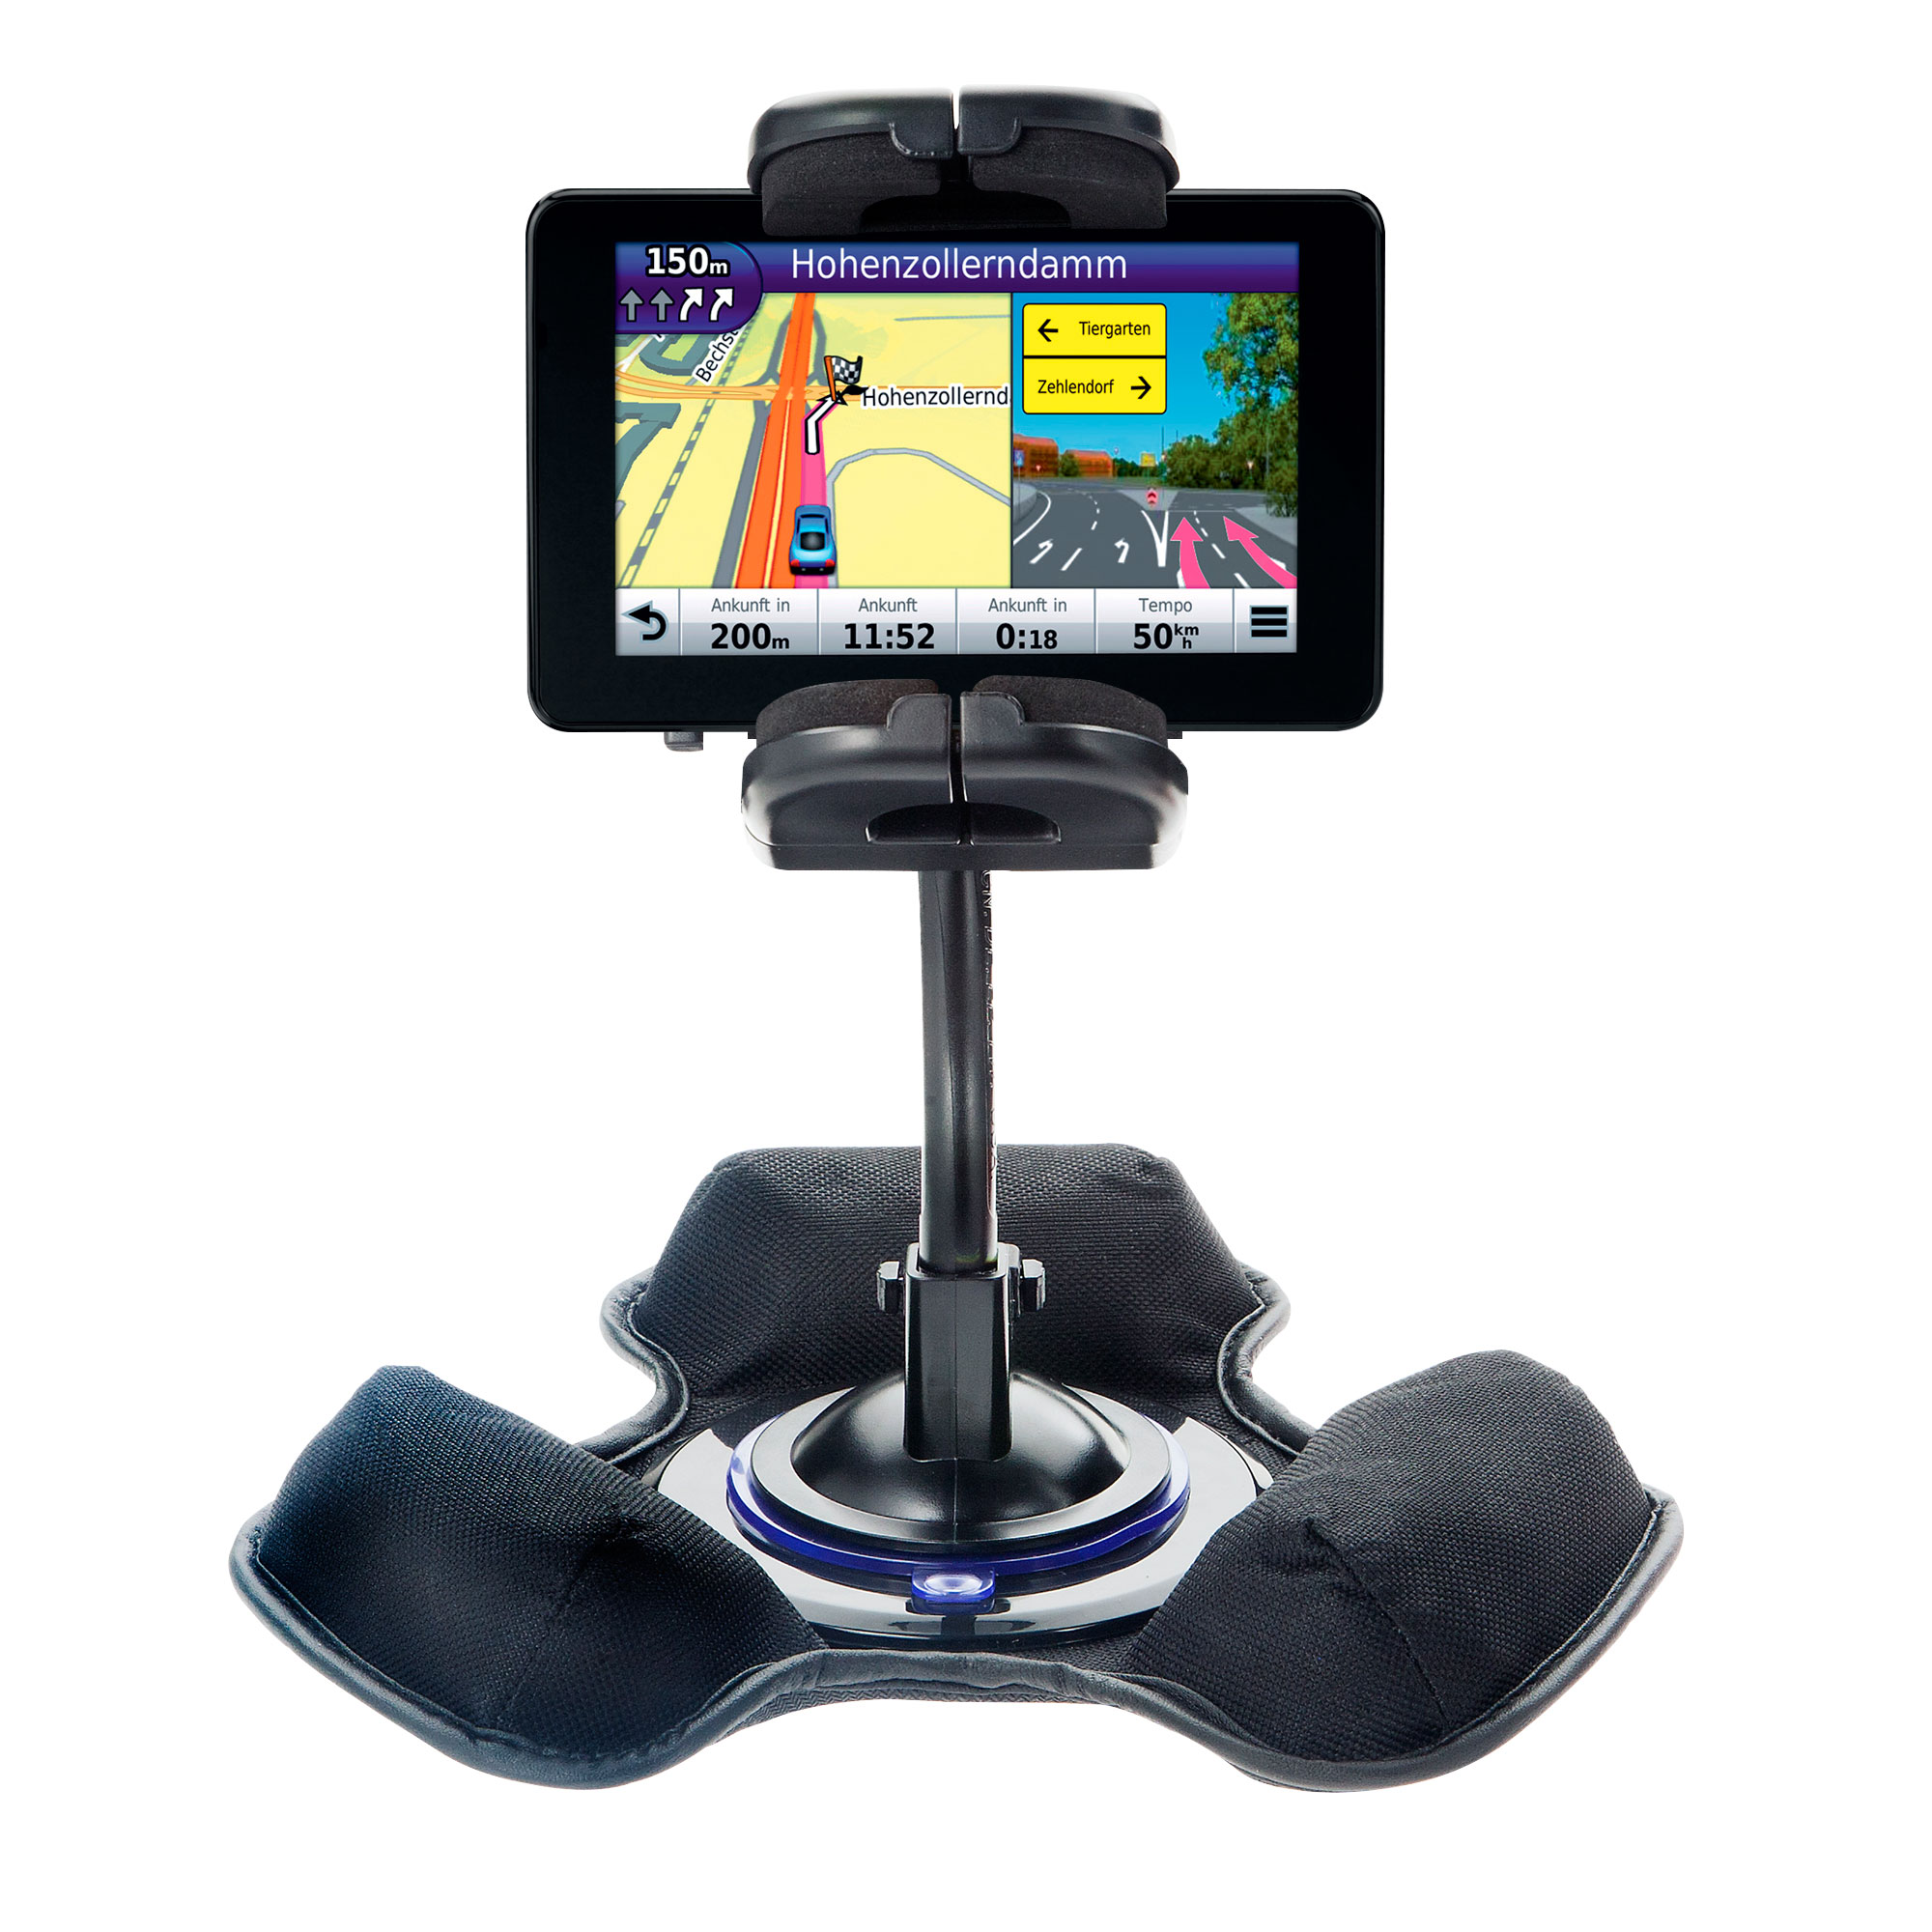 Dash and Windshield Holder compatible with the Garmin Nuvi 3550